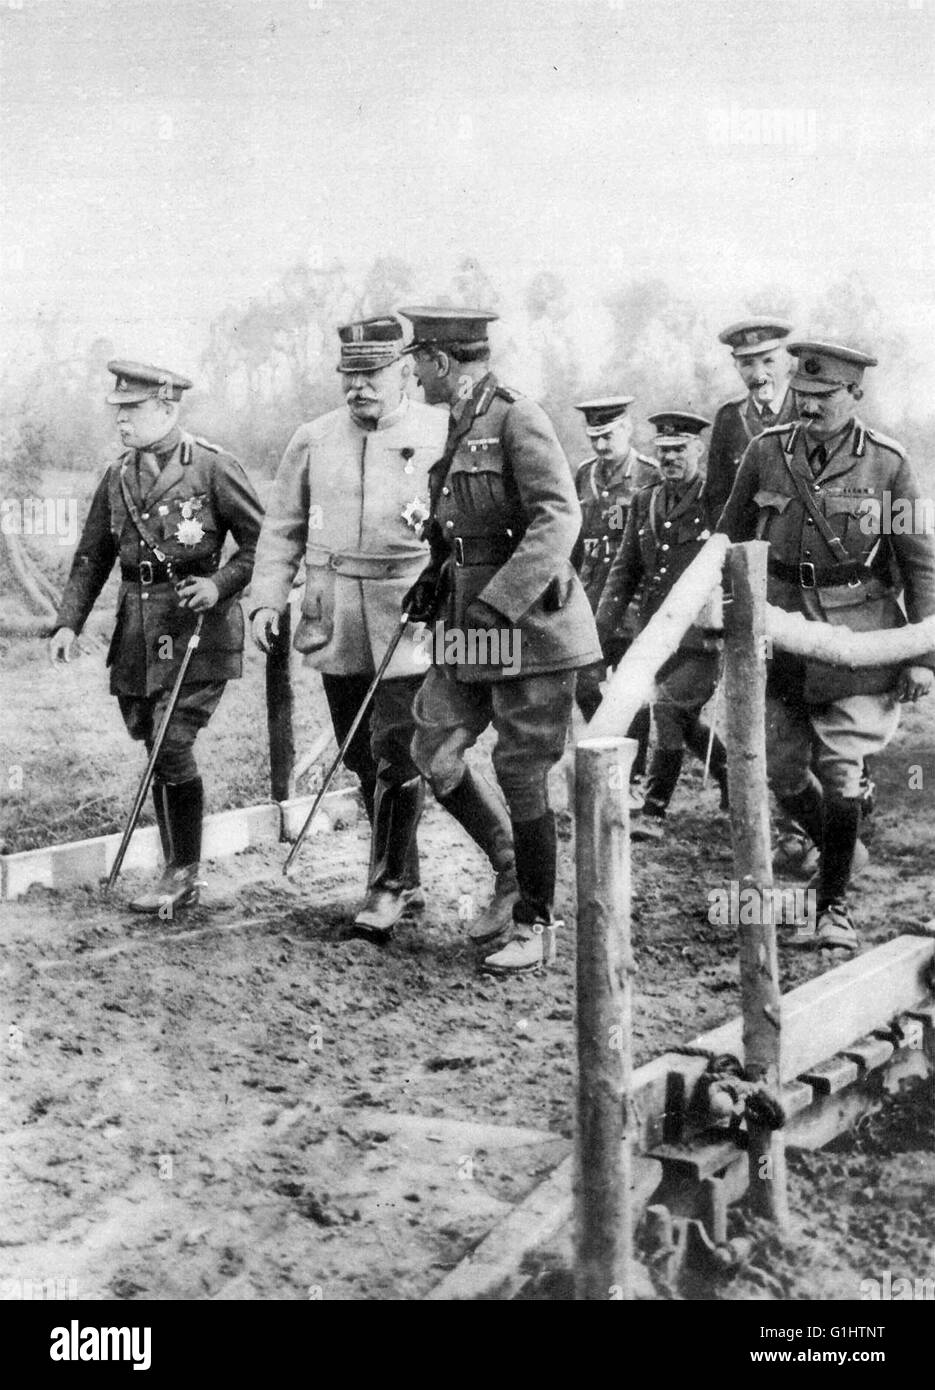 Field Marshal Douglas Haig, Joseph Joffre and John French, at the Front during World War 1 - Stock Image